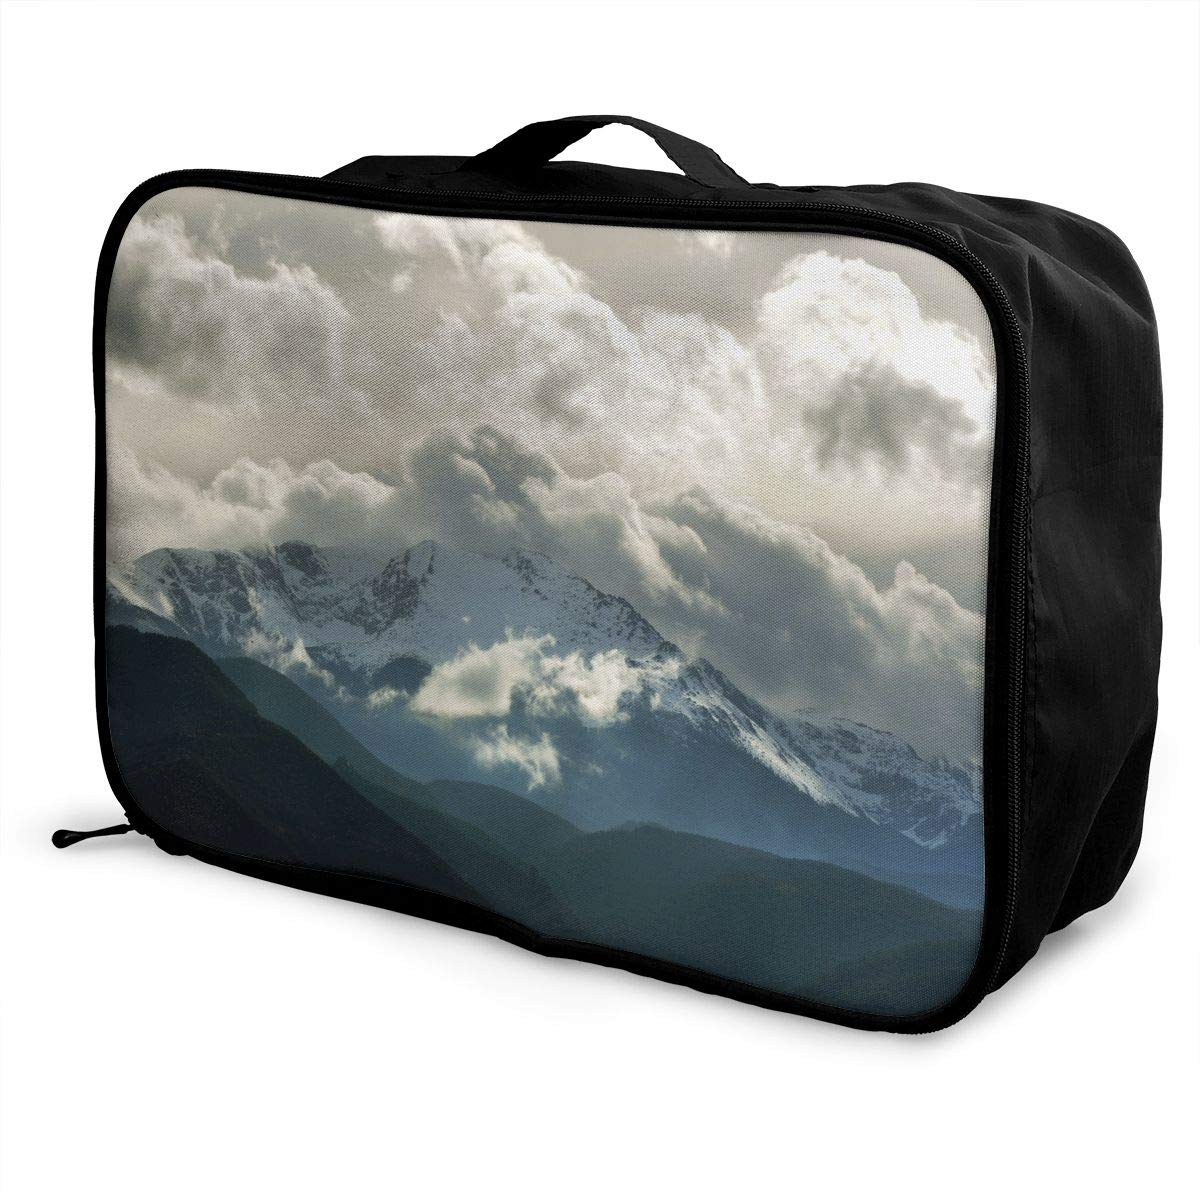 Travel Luggage Duffle Bag Lightweight Portable Handbag Mountains Print Large Capacity Waterproof Foldable Storage Tote